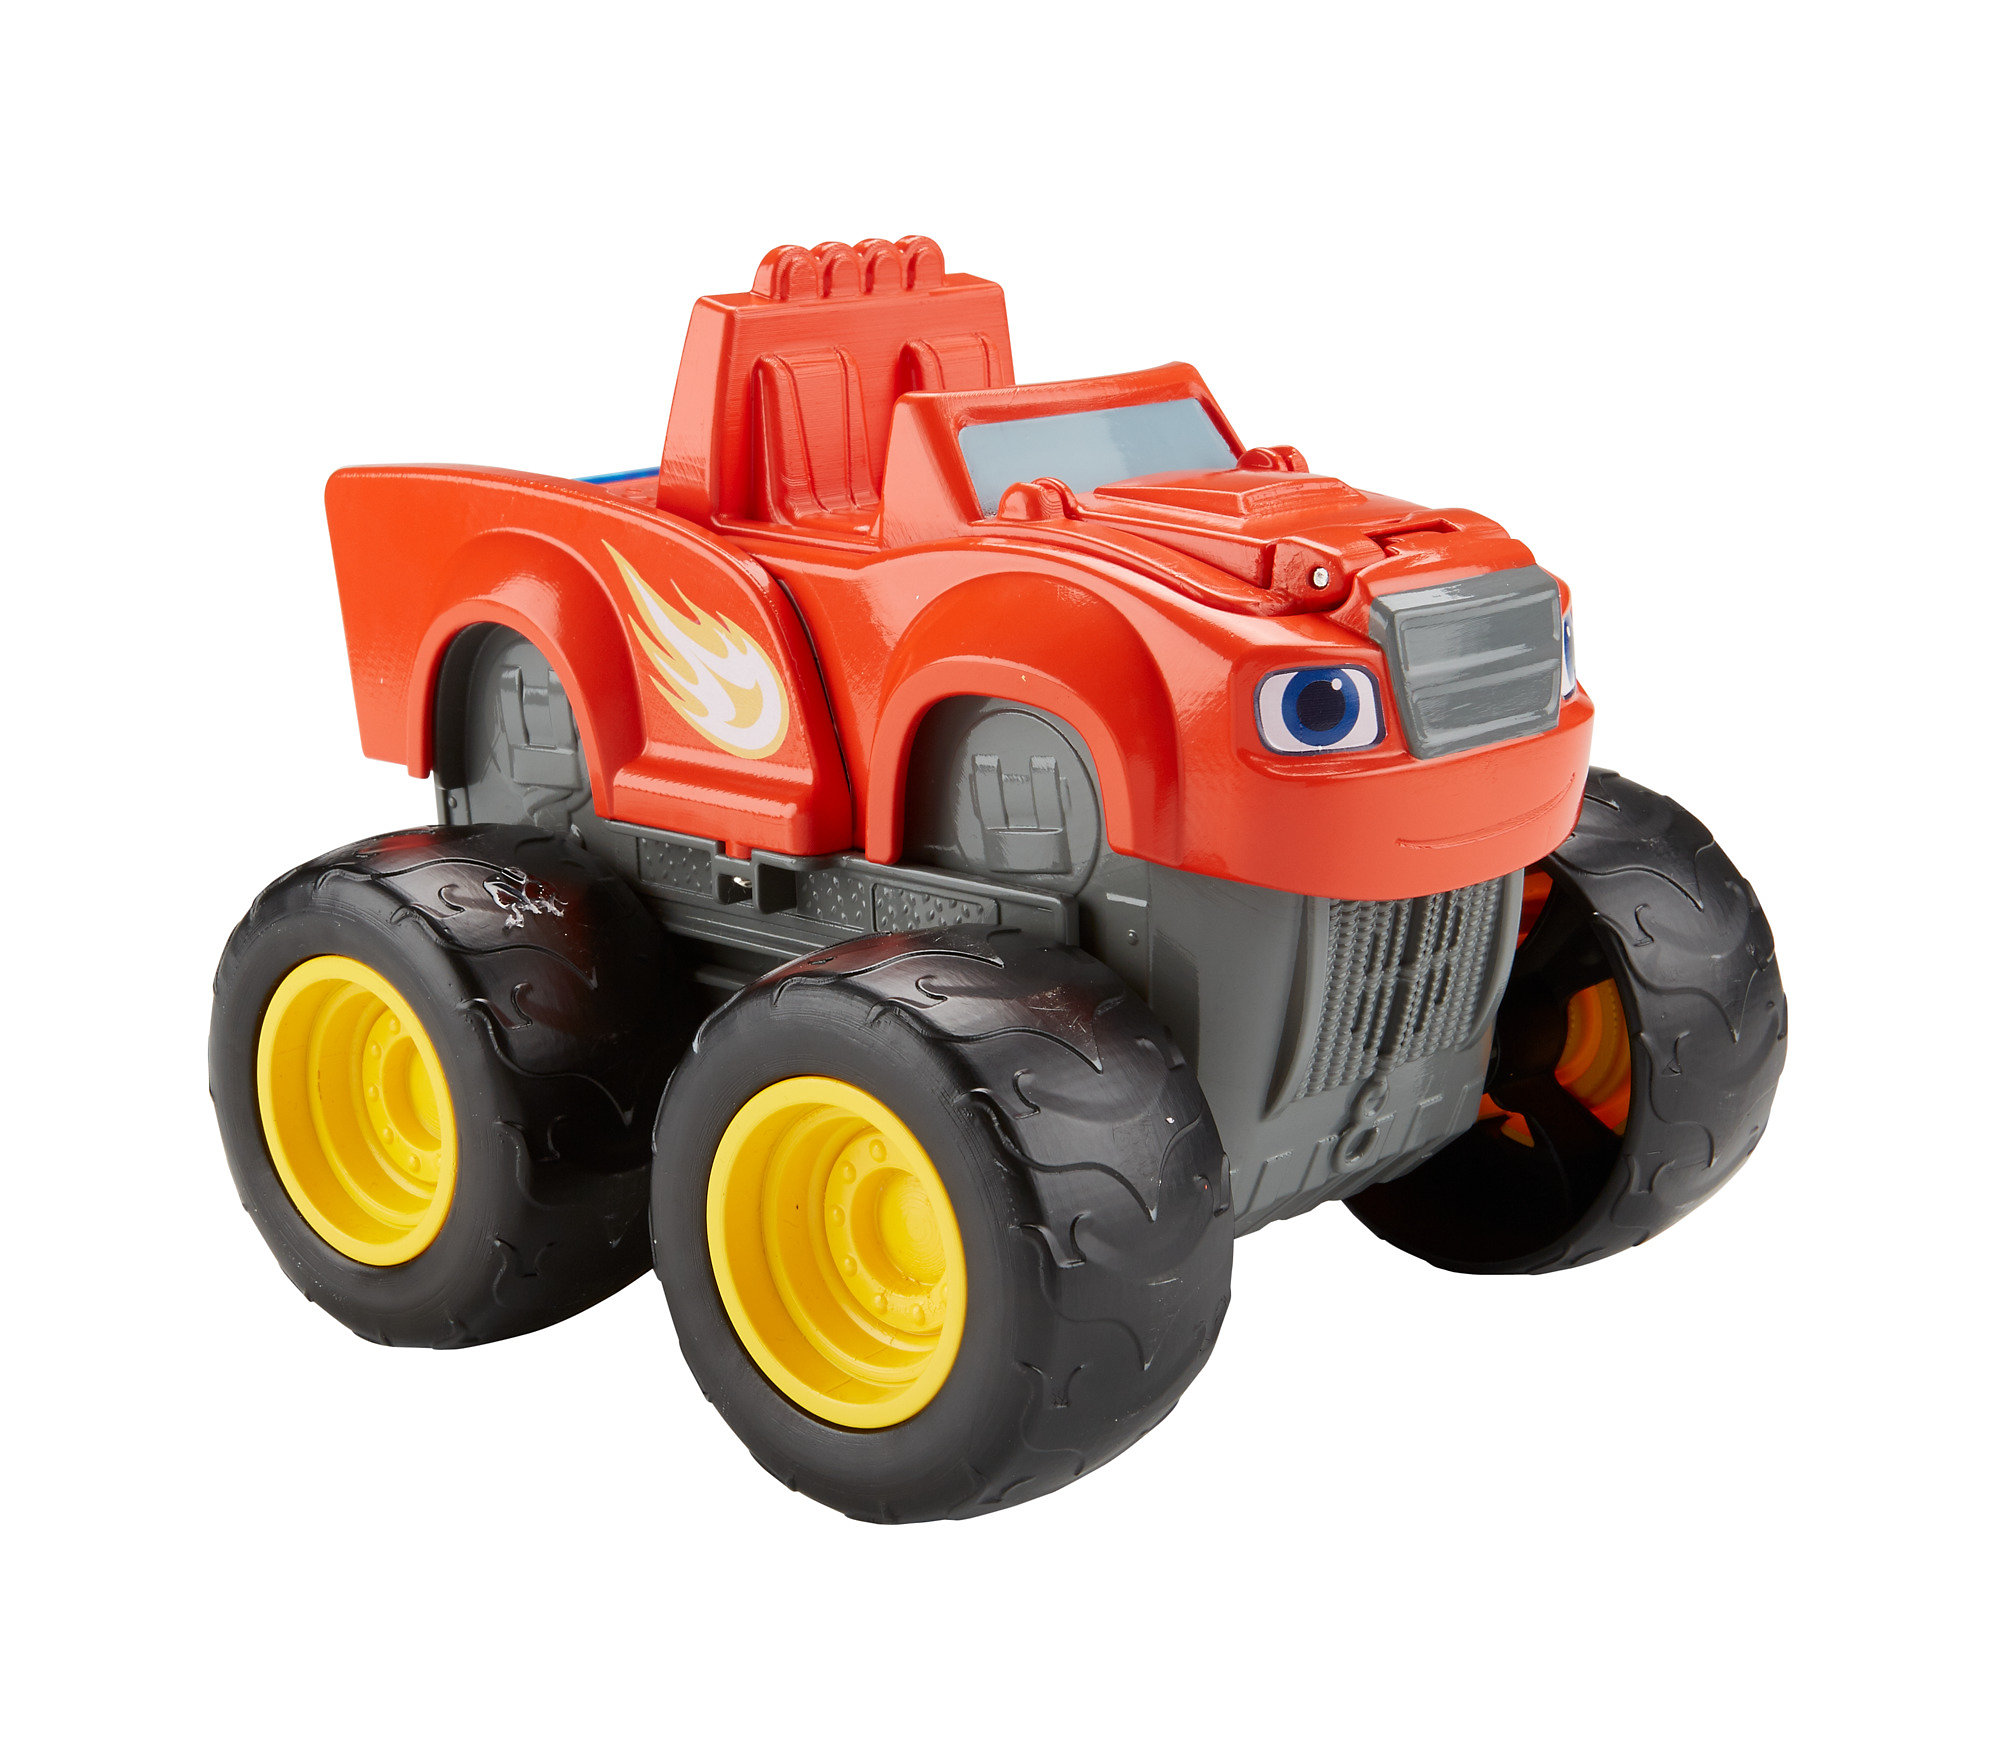 Fisher Price Nickelodeon Blaze And The Monster Machines Transforming Tow Truck Blaze by Mattel